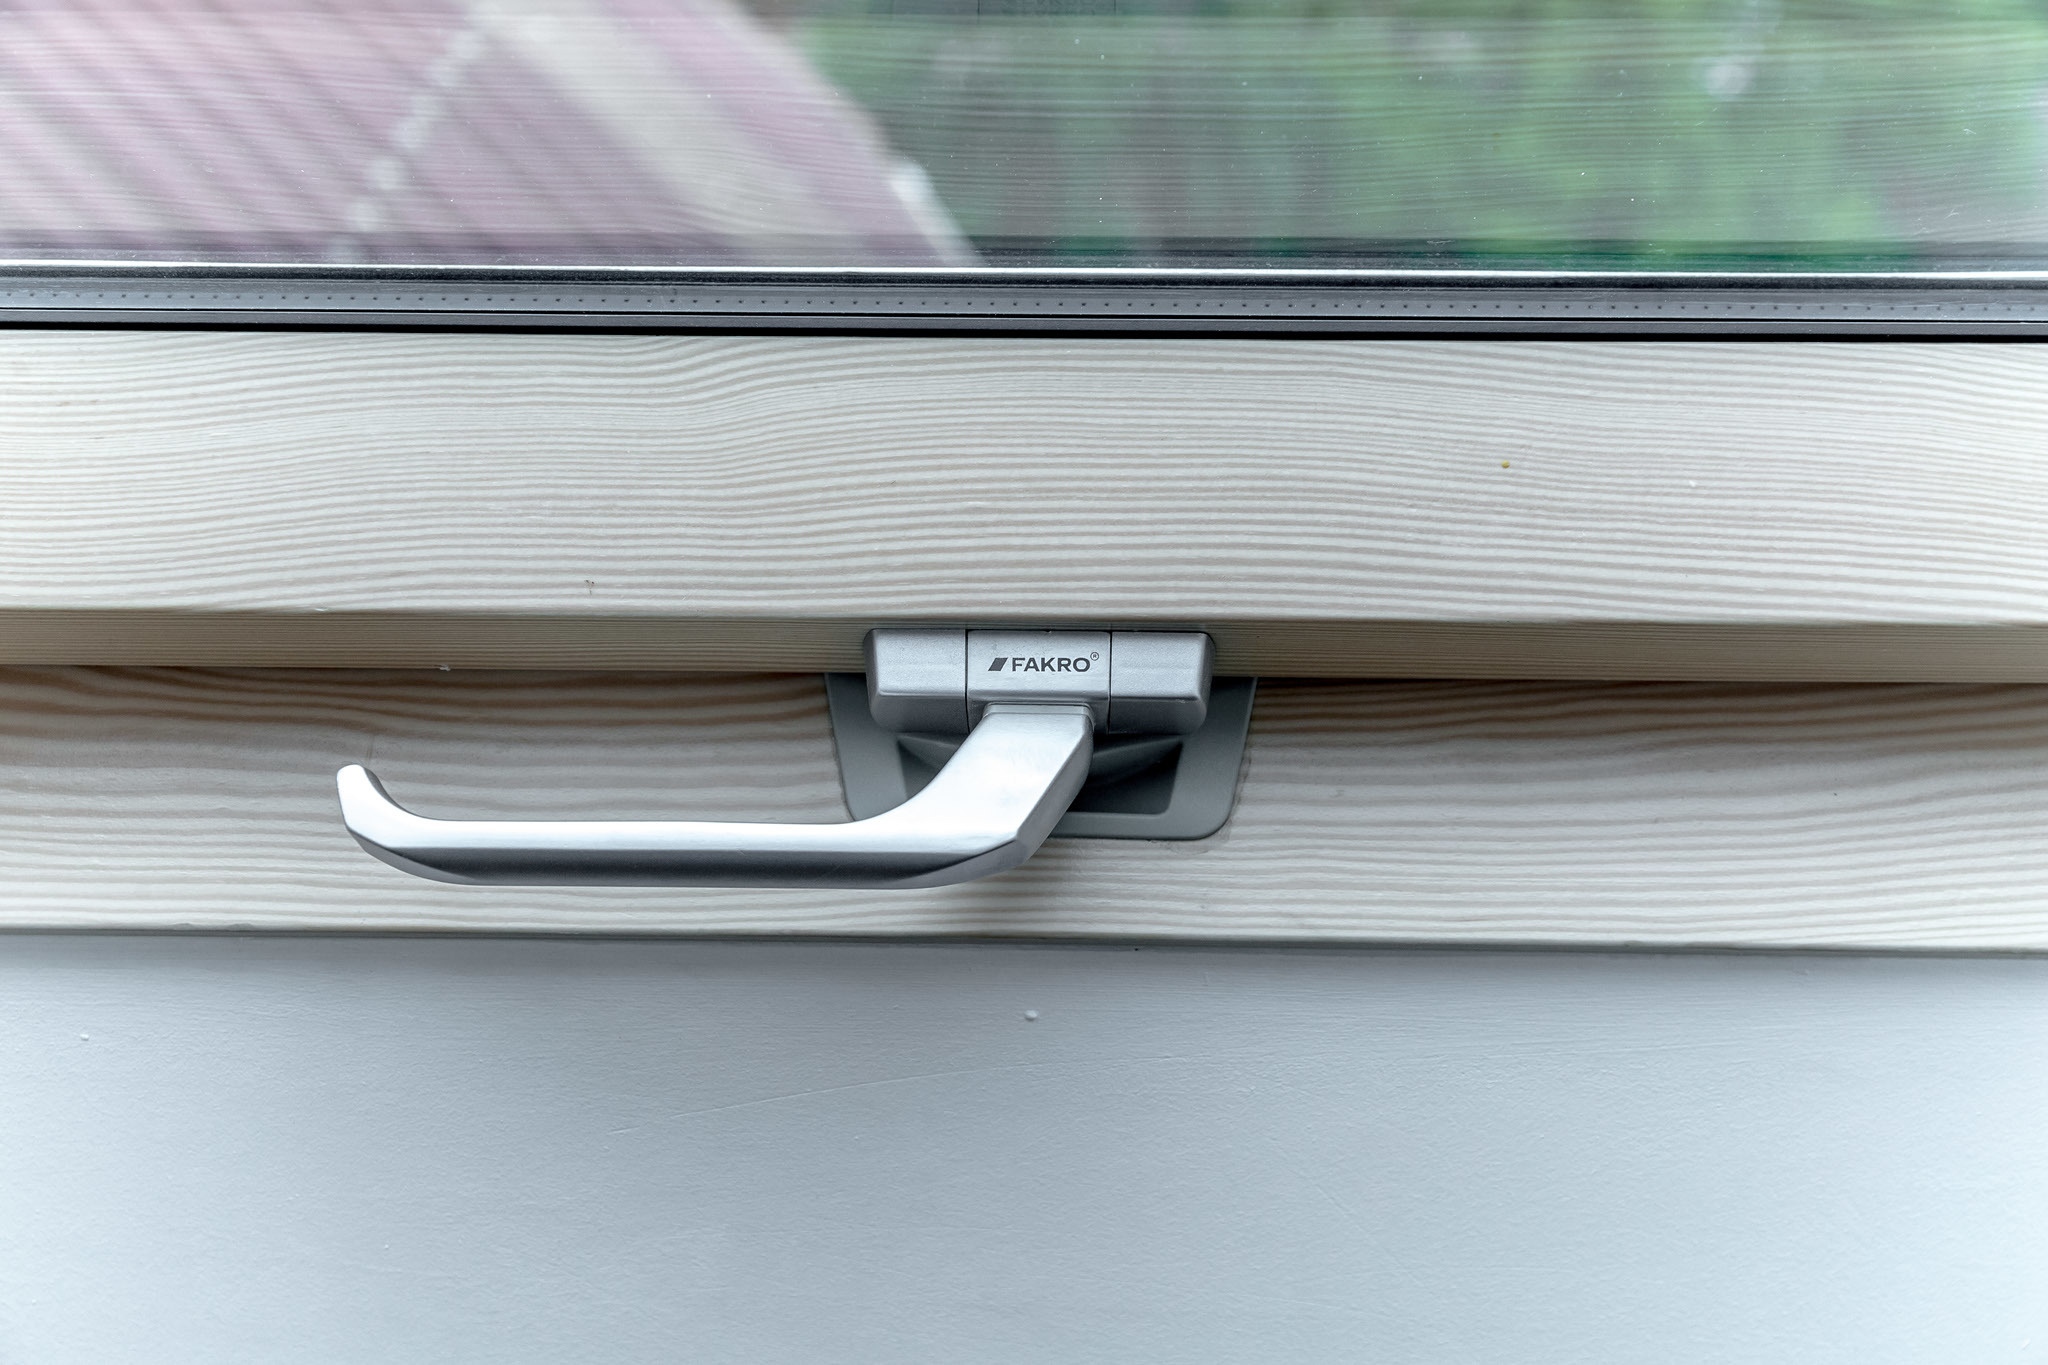 Close up of FAKRO roof window handle